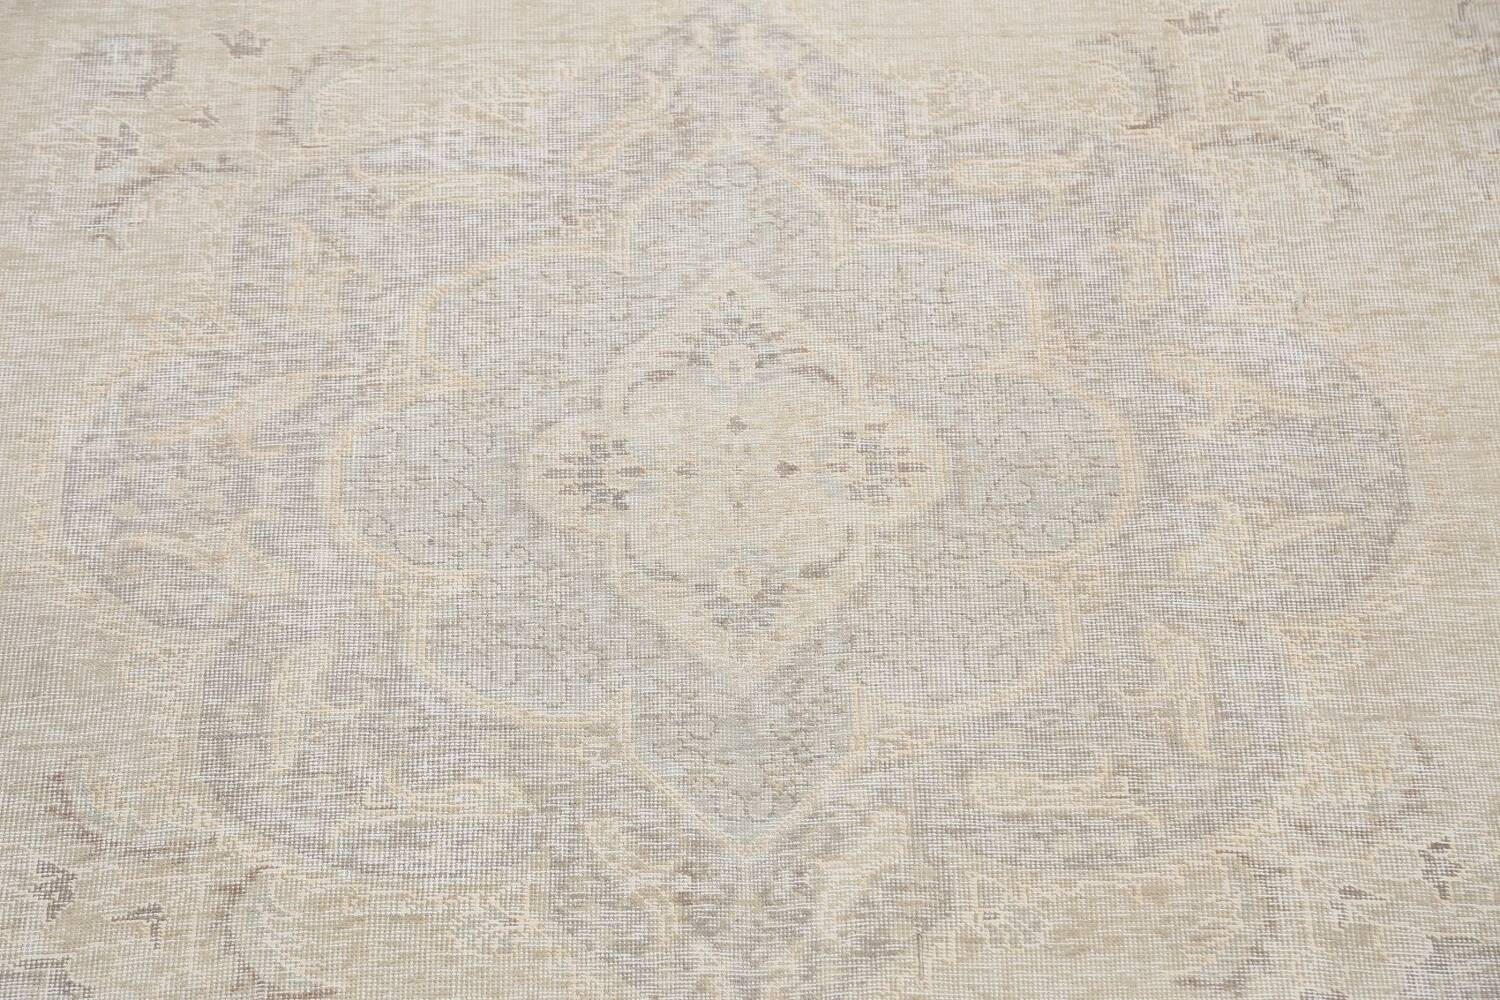 Antique Muted Distressed Tabriz Persian Area Rug 10x12 image 4